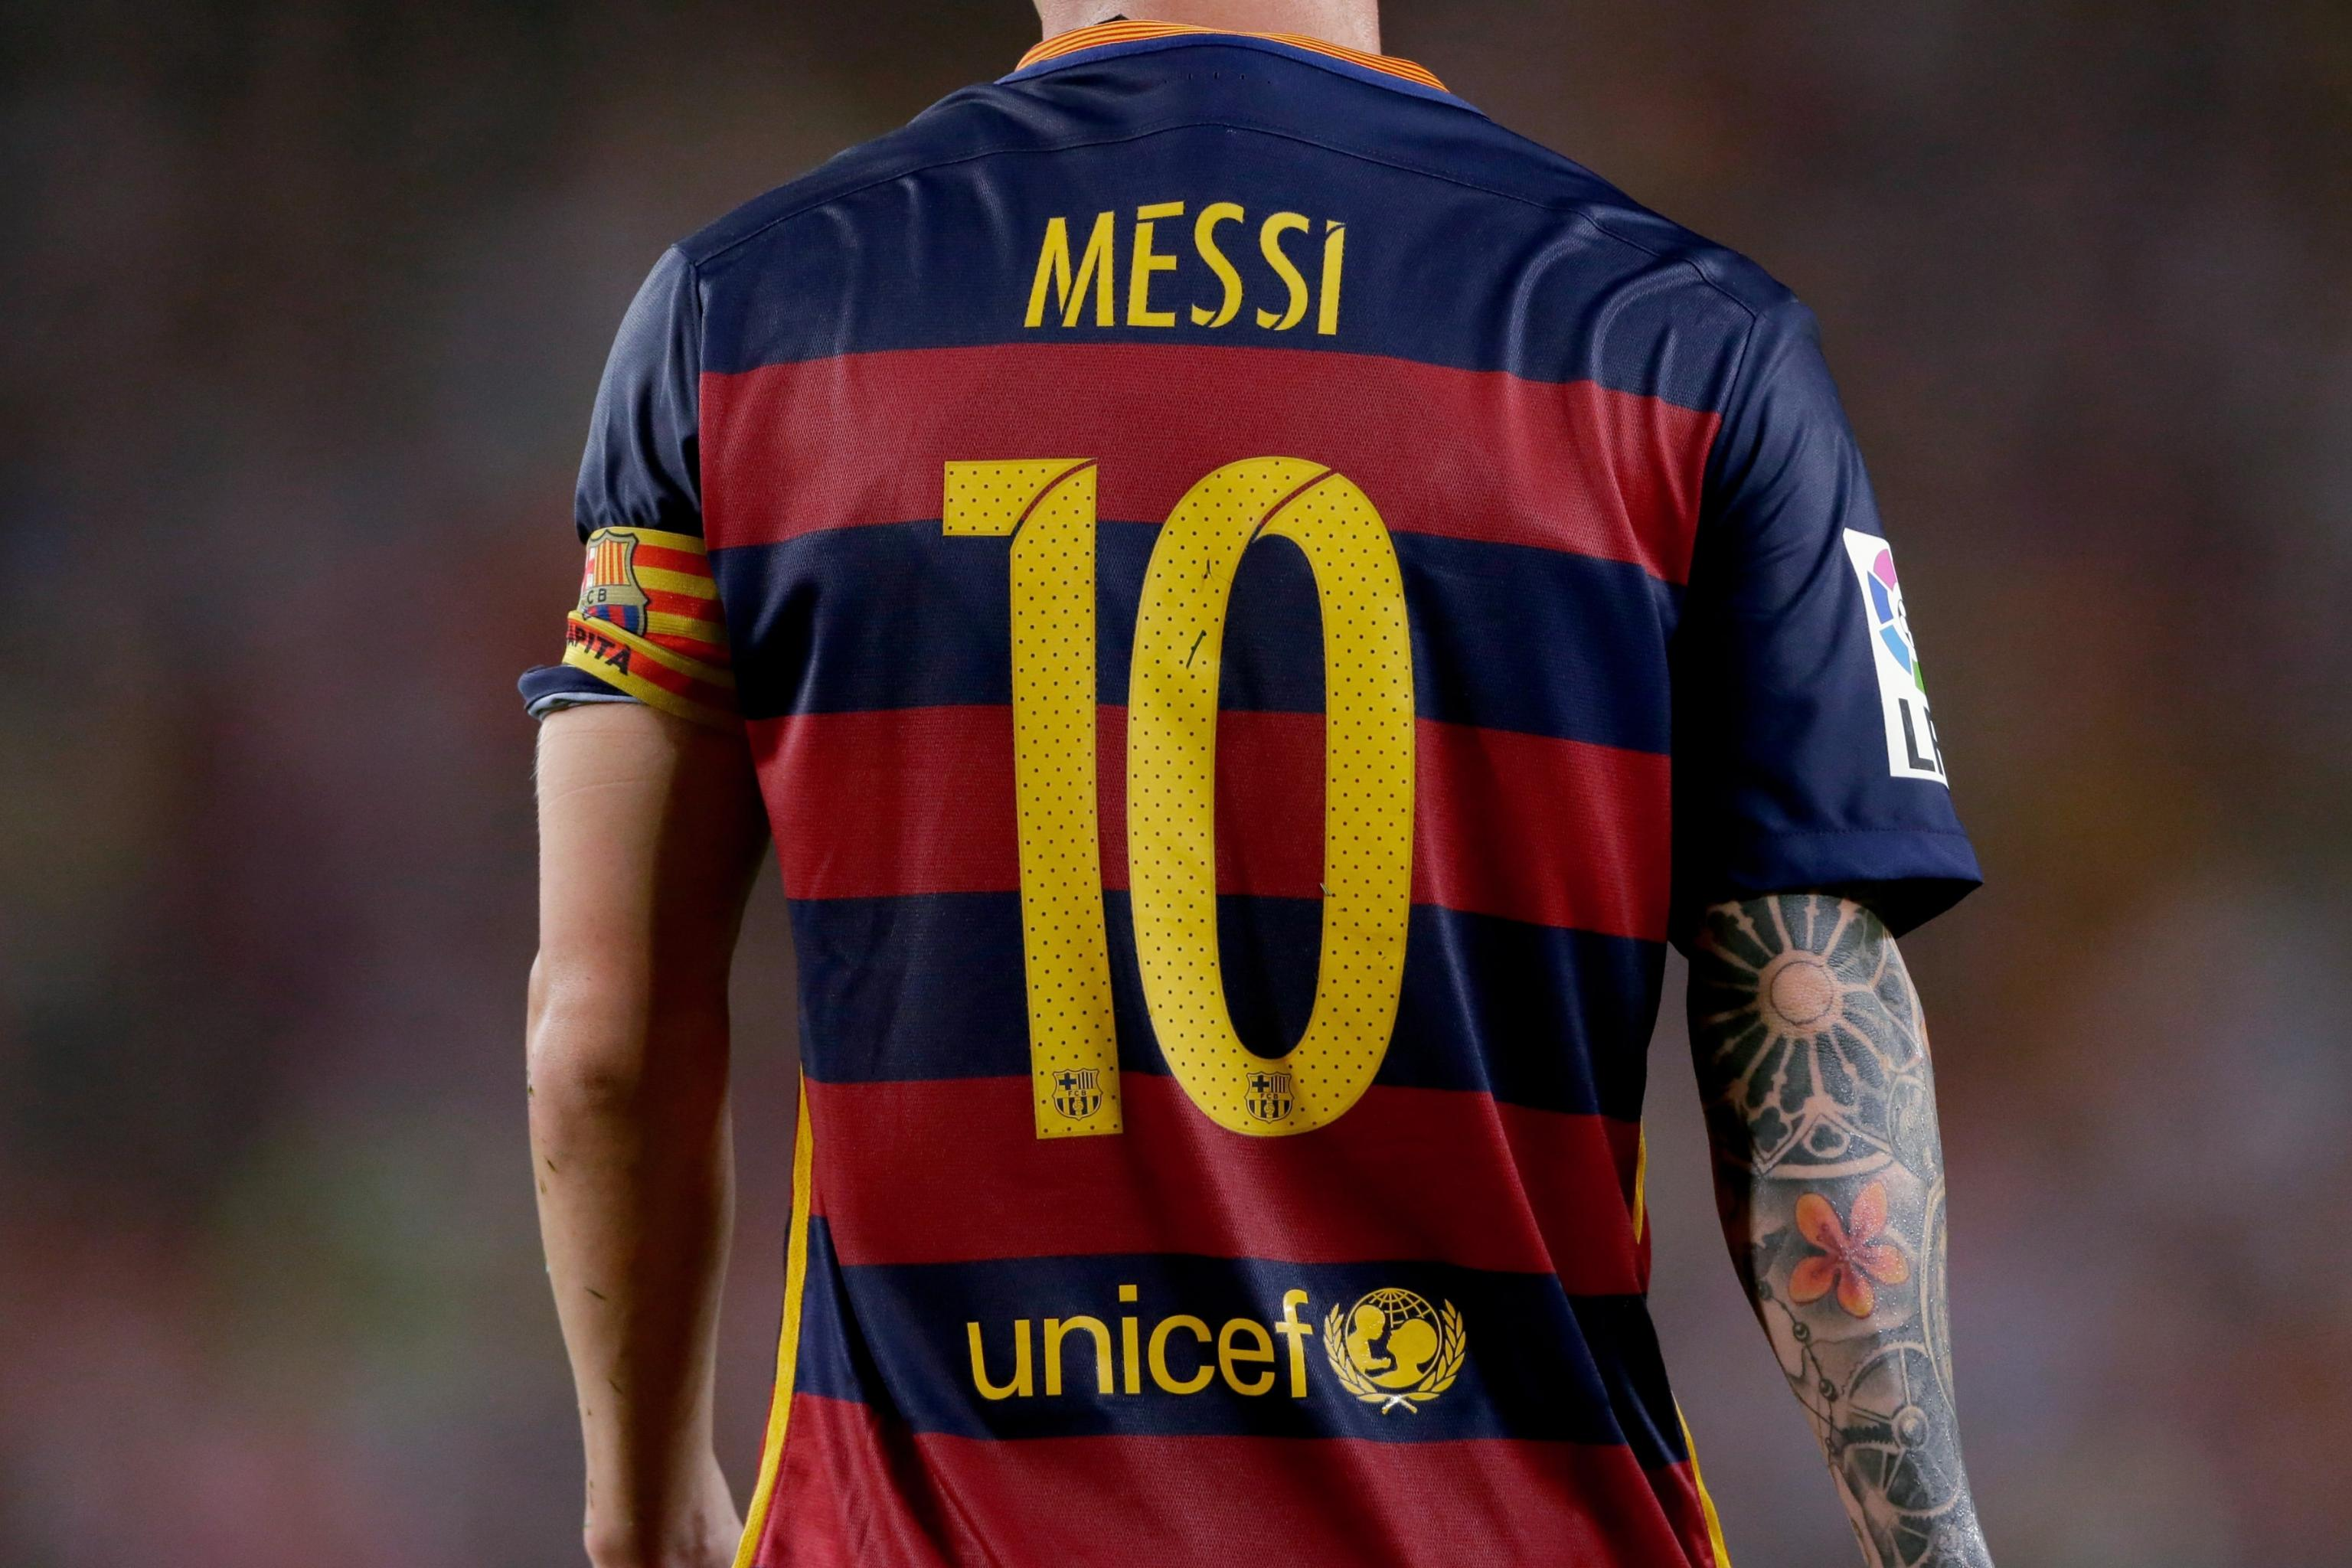 reputable site bb508 15c8e Leo Messi's Barcelona Shirt Is the Most Sold Worldwide ...